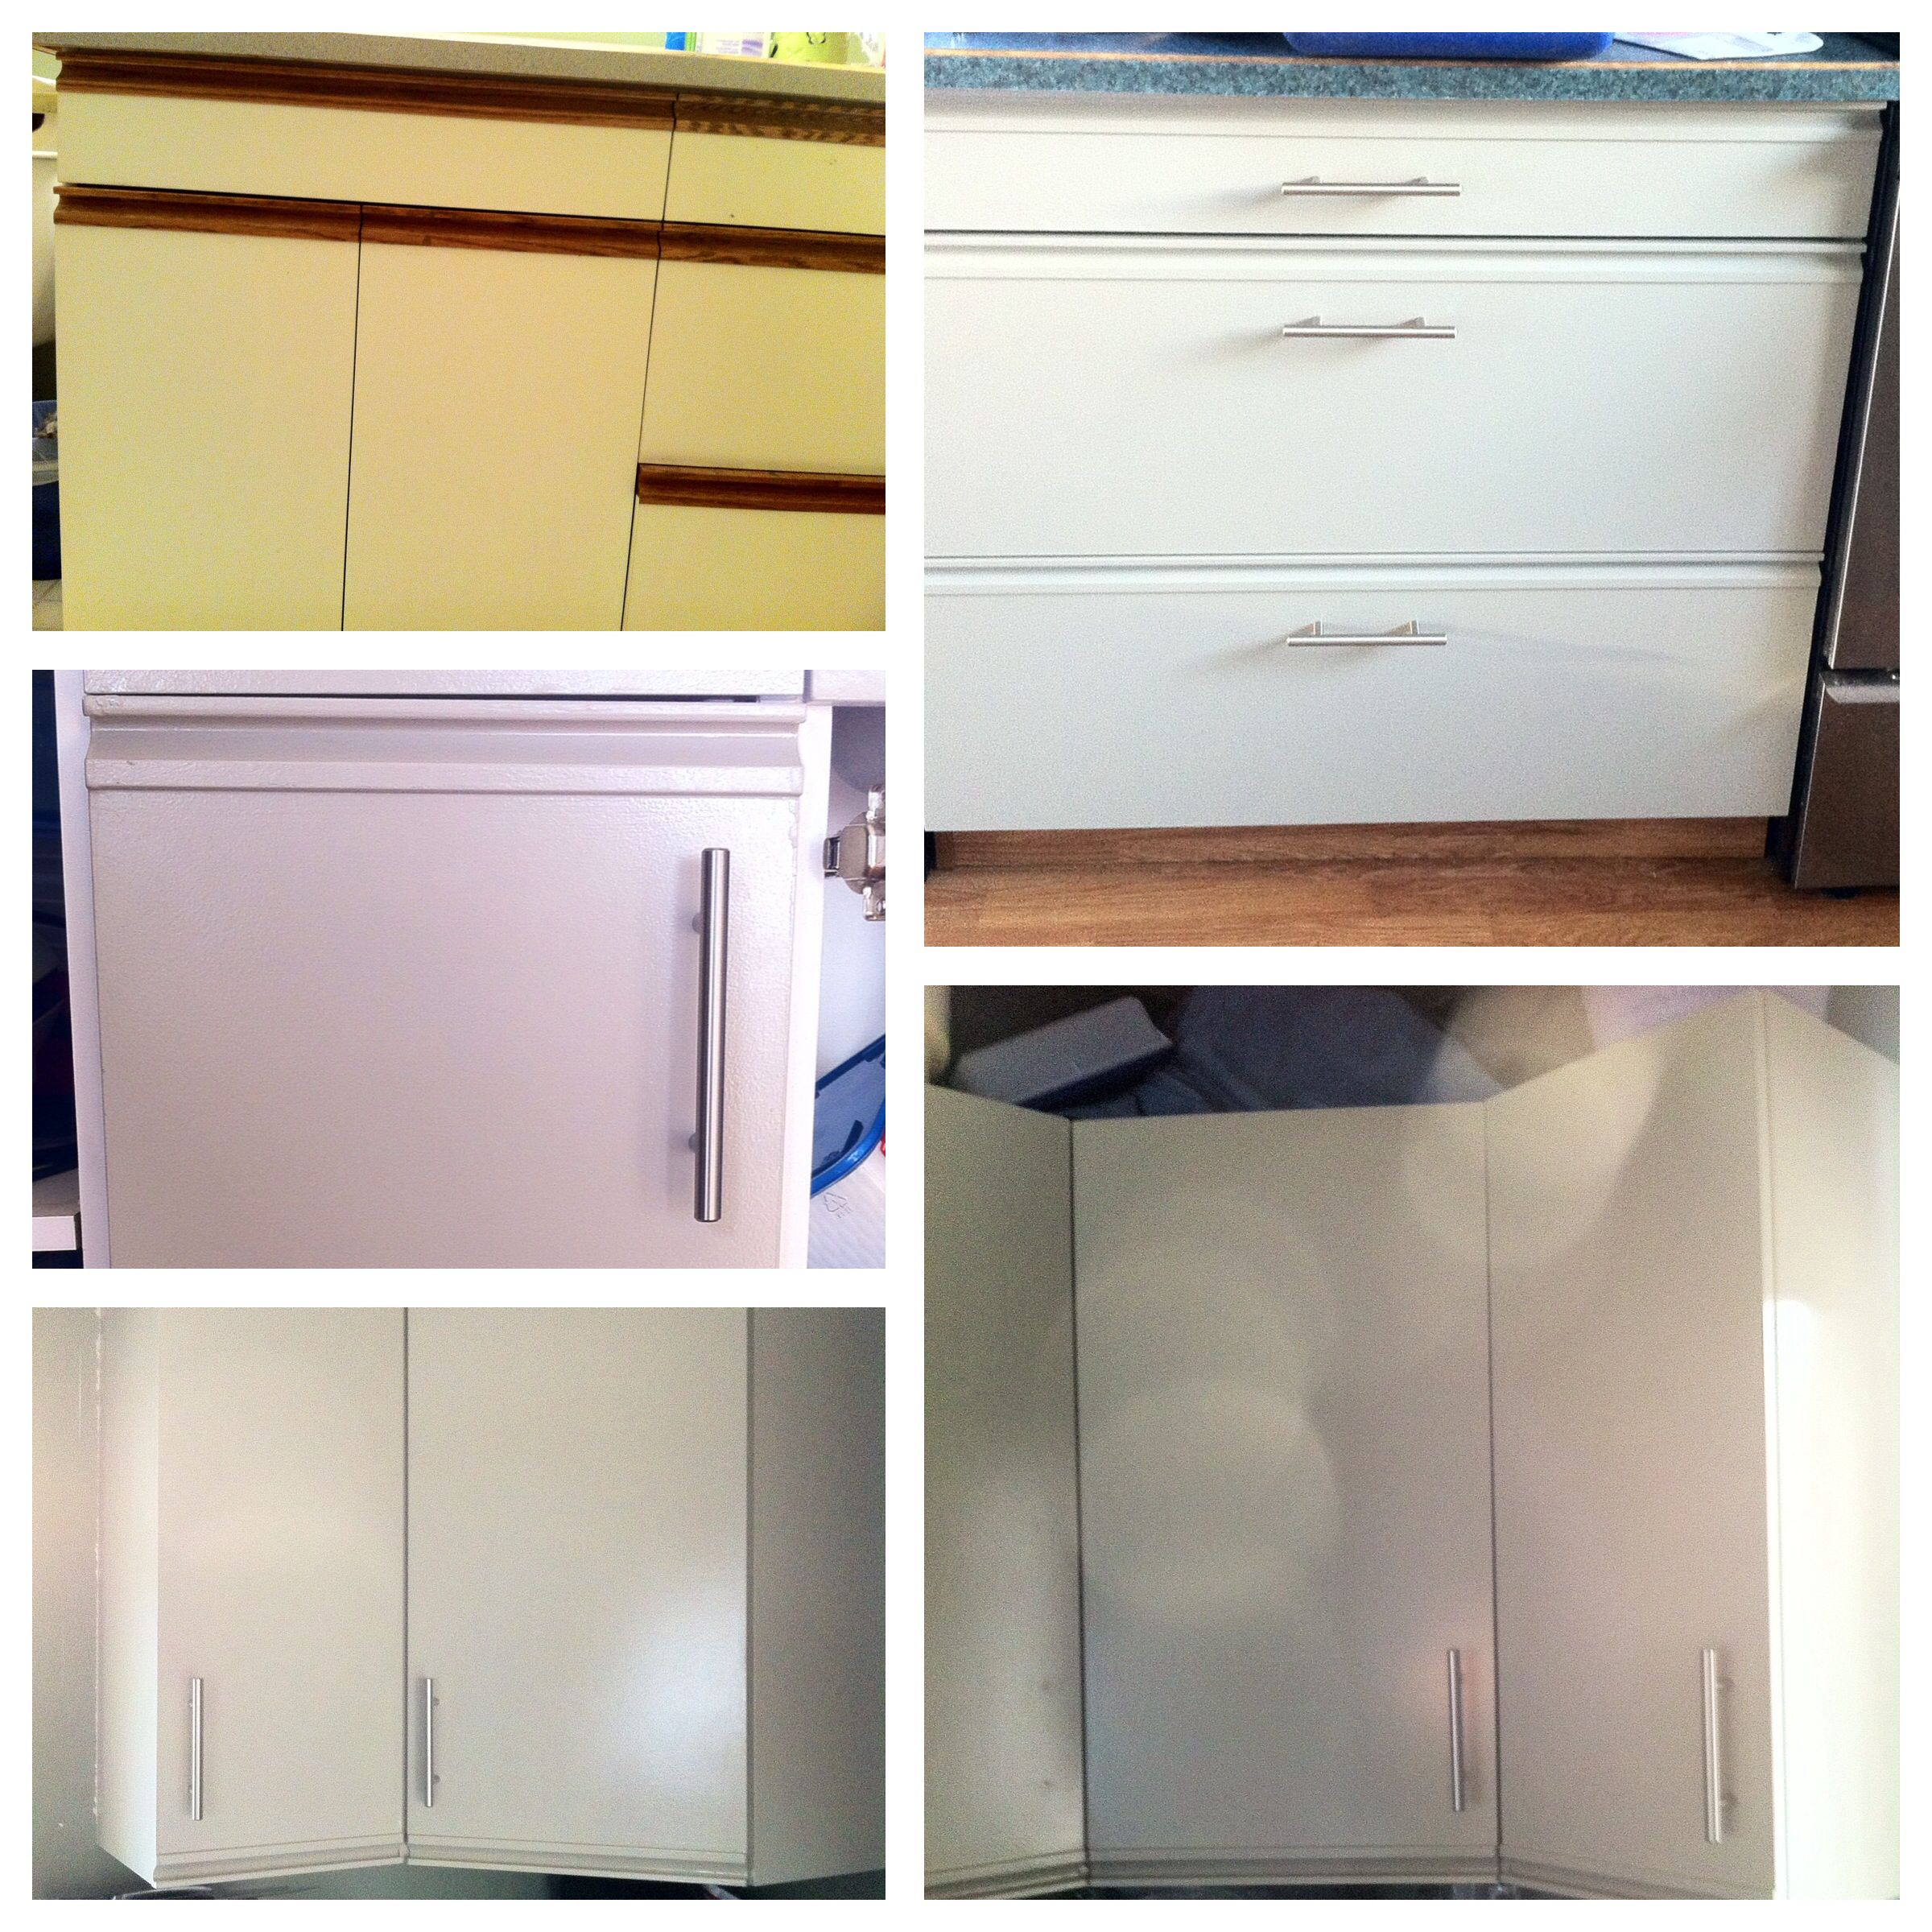 Refinishing Laminate Bathroom Cabinet Door: DIY Painted Cabinets. Painting Laminate/melamine Kitchen